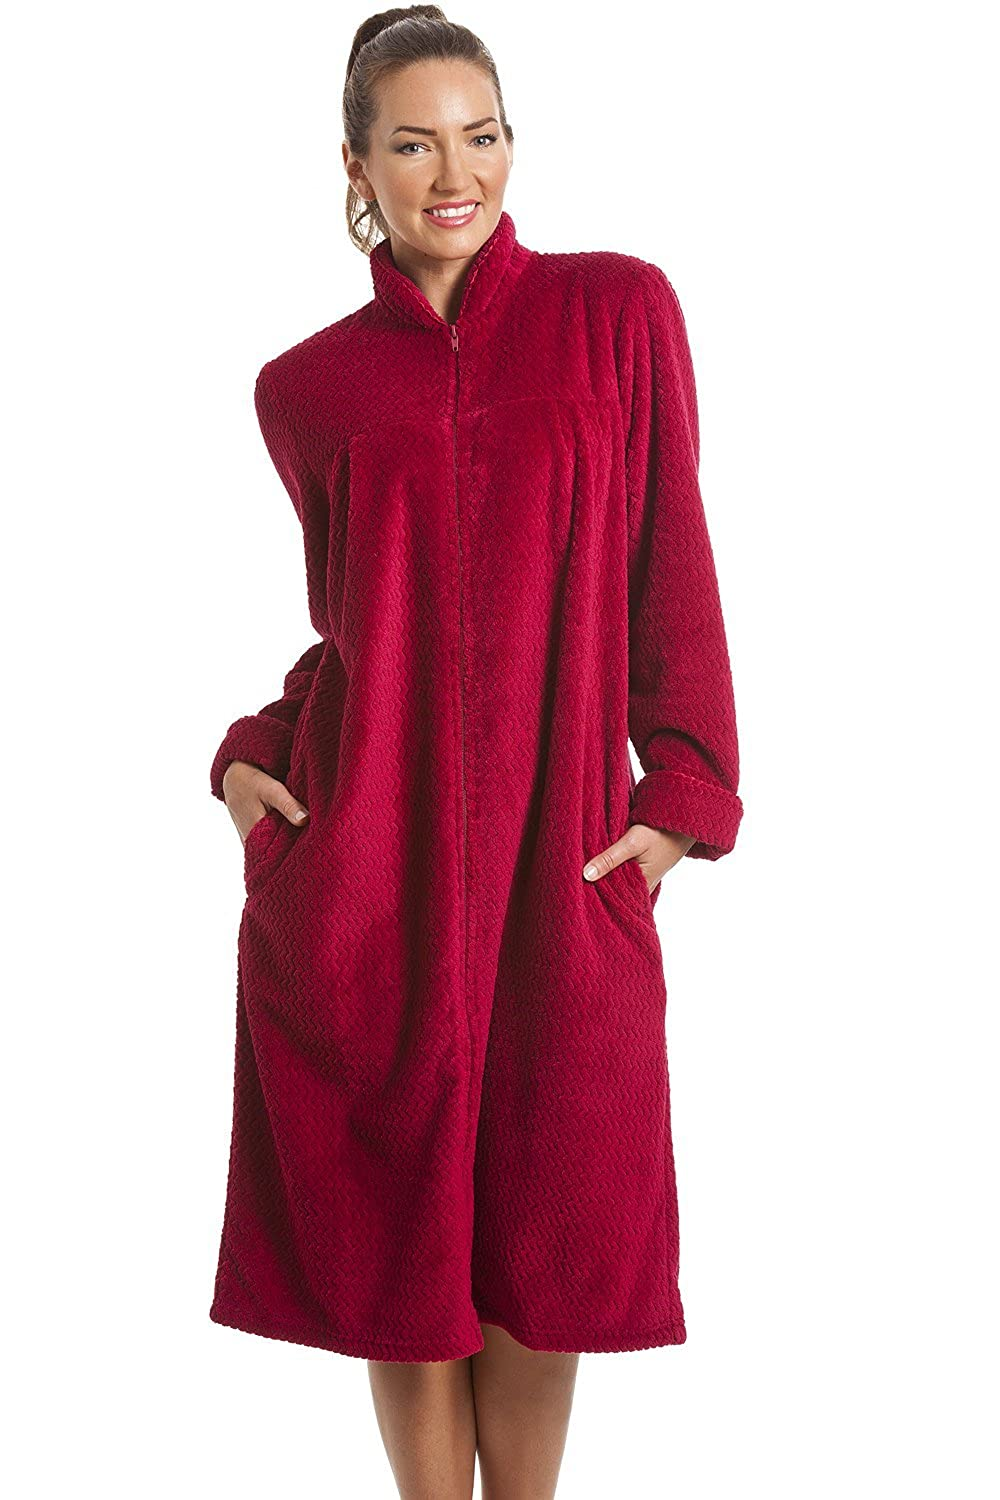 Camille Womens Ladies Soft Fleece Ruby Red Zip Front House Coat